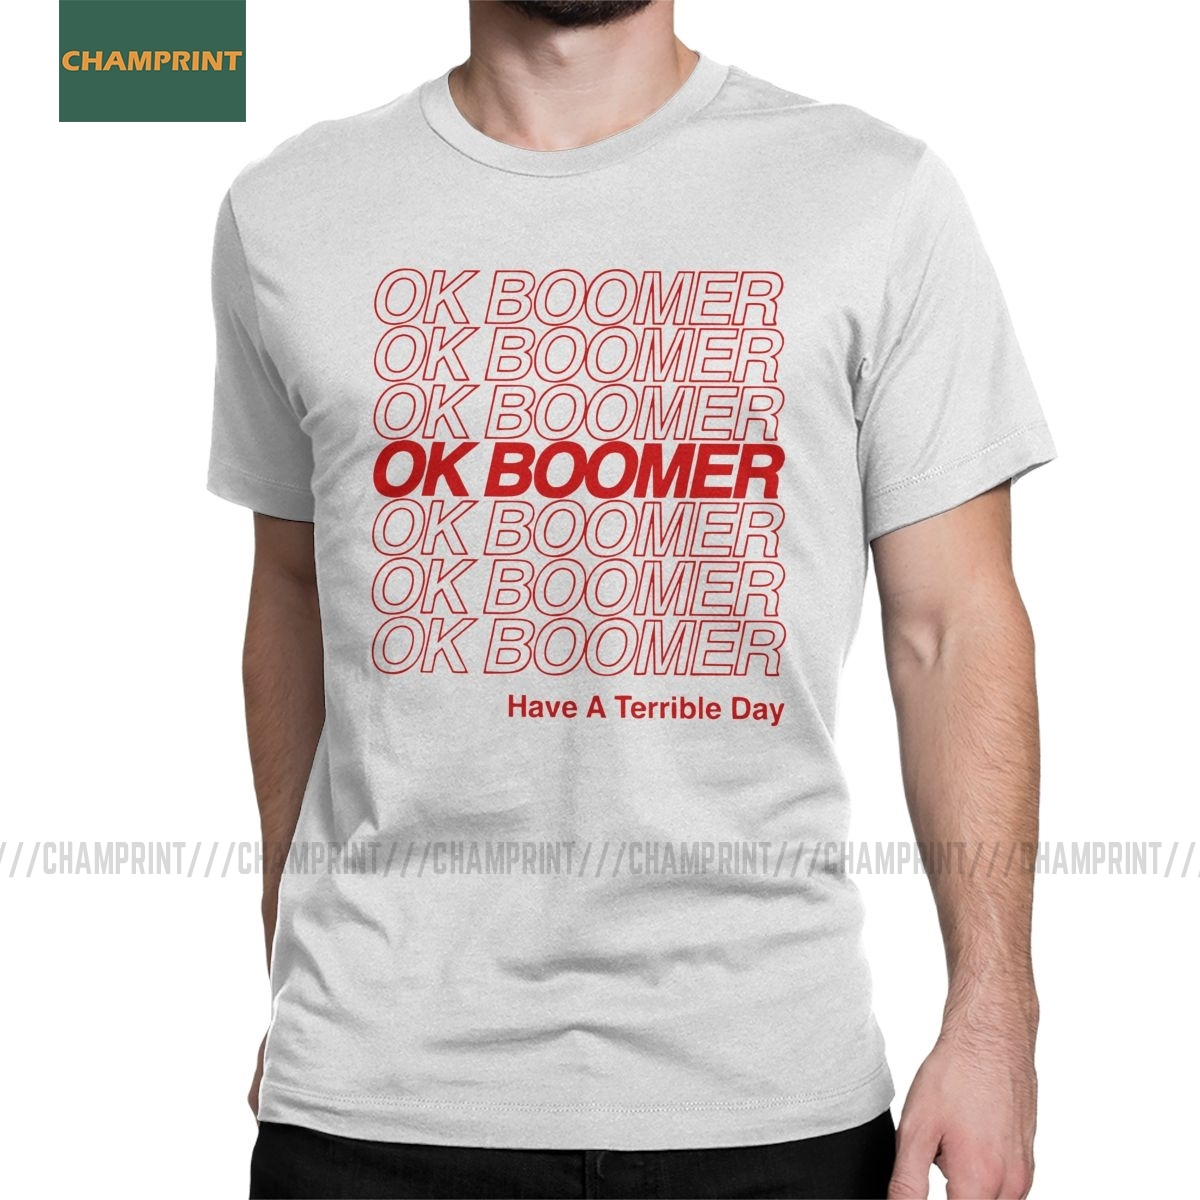 Casual OK Boomer T-Shirt for Men Crew Neck Pure Cotton T Shirt Quote Generation Z Okay Meme Short Sleeve Tees Plus Size Tops image